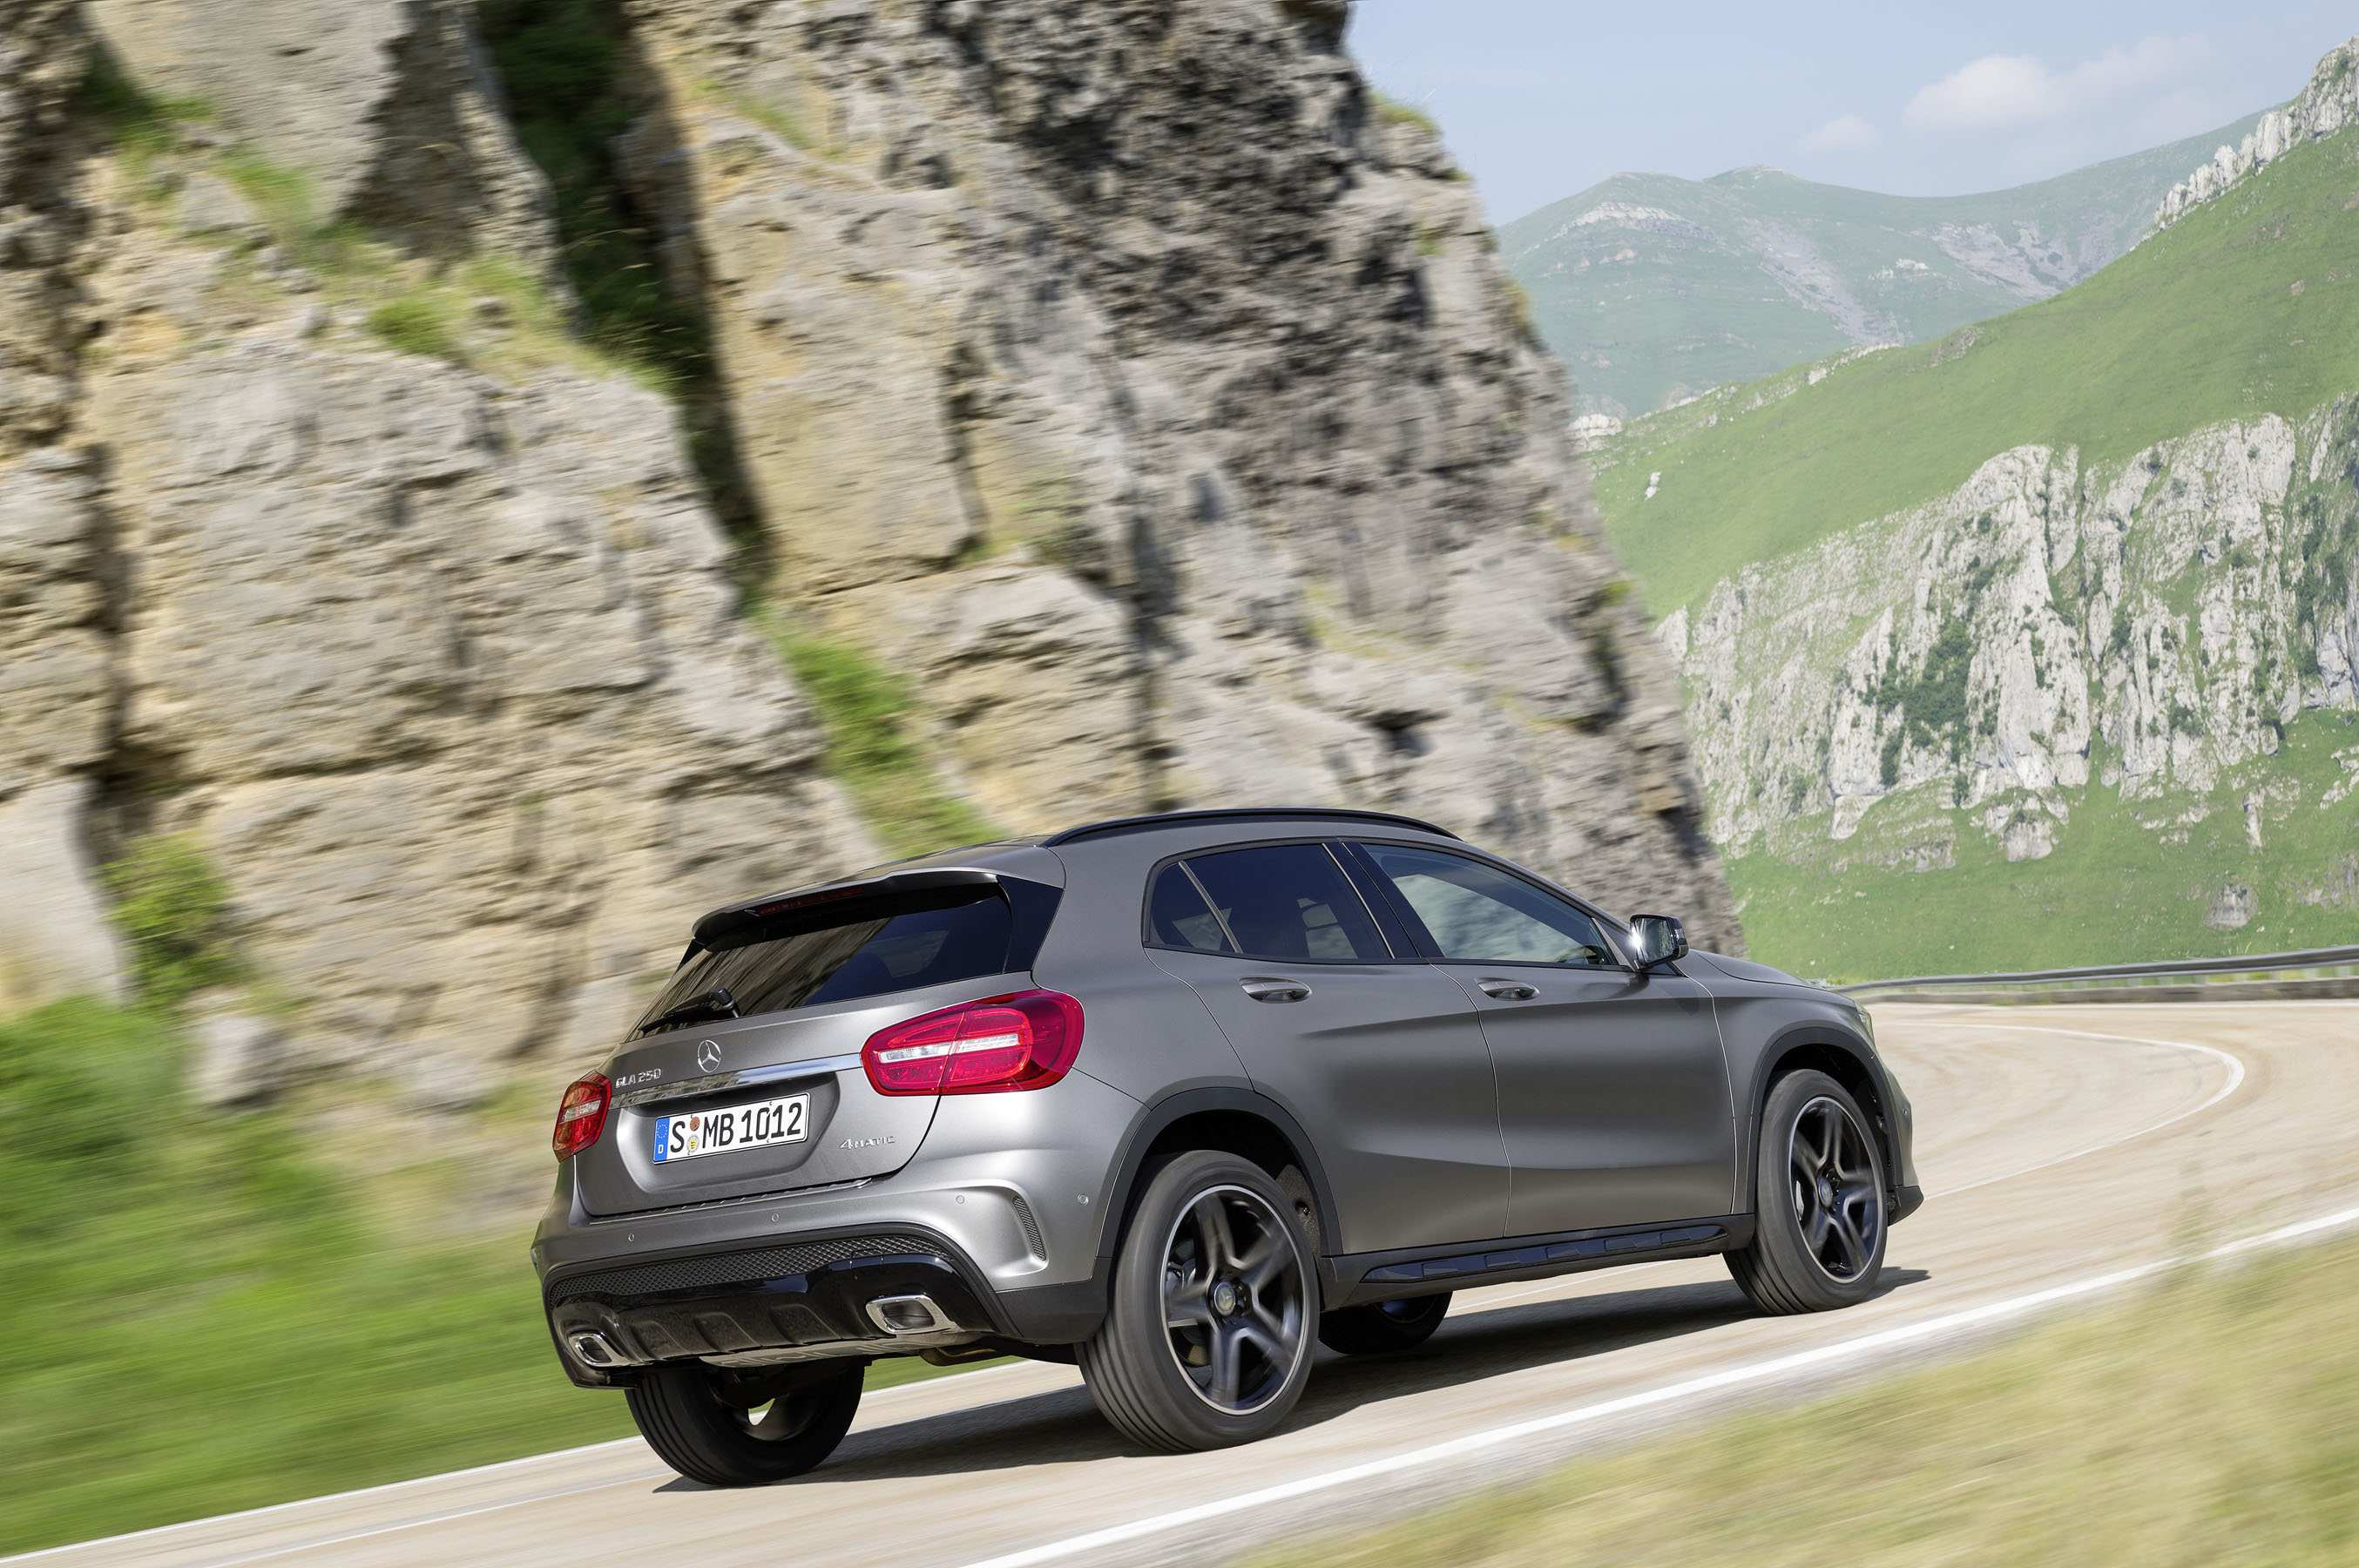 Mercedes-Benz GLA Prices And Details: Latest News – Surf4cars